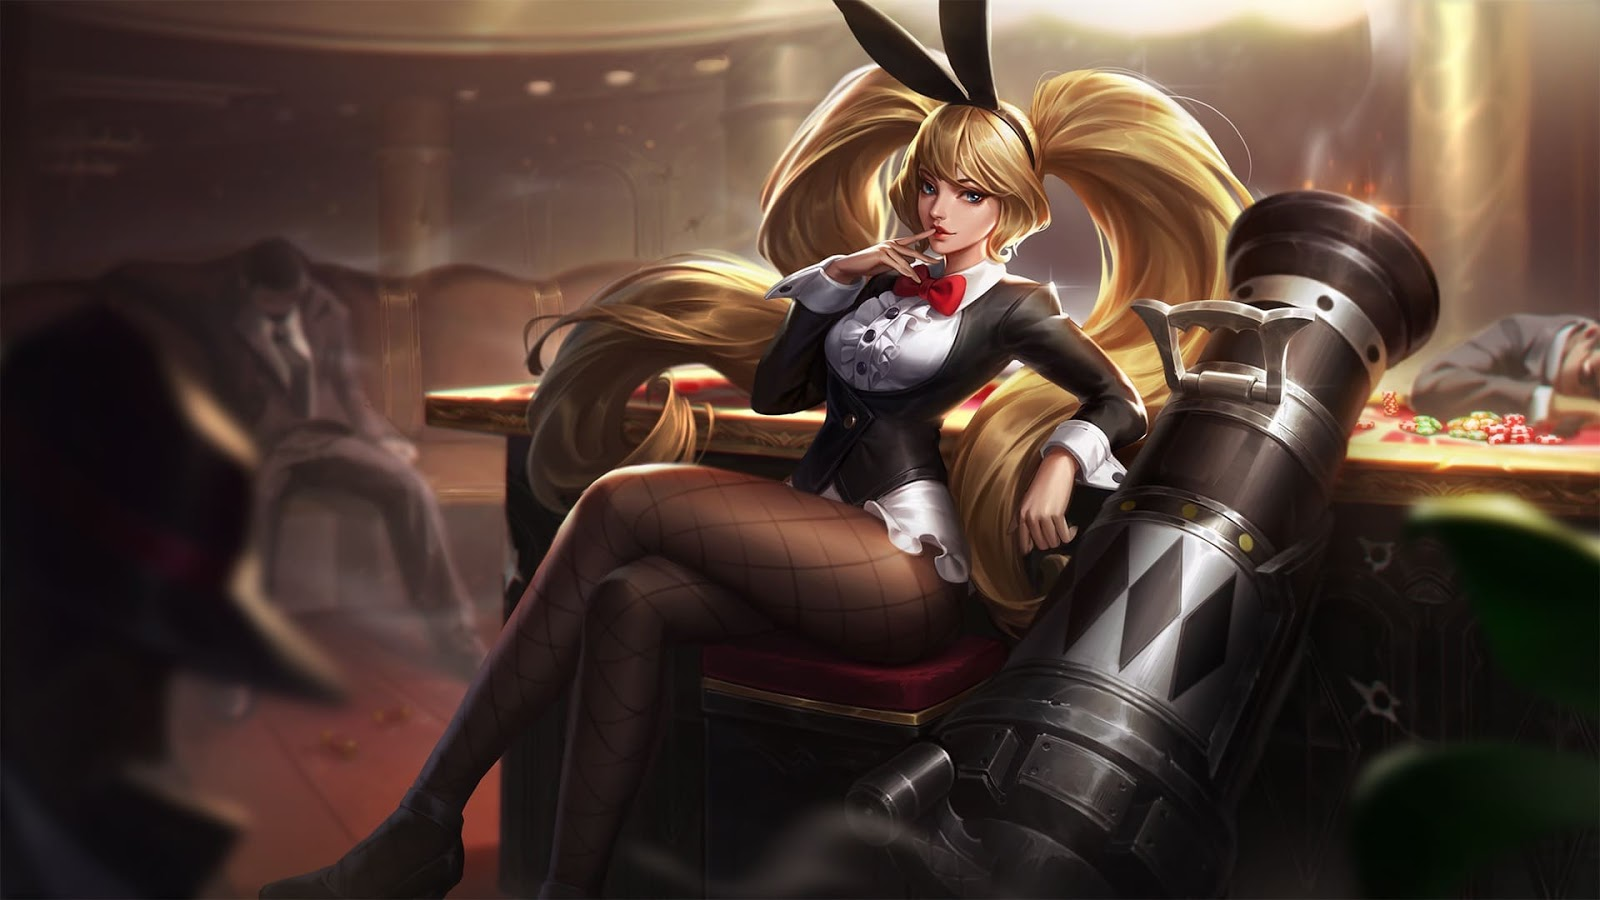 Wallpaper Layla Bunny Babe Skin Mobile Legends Full HD for PC